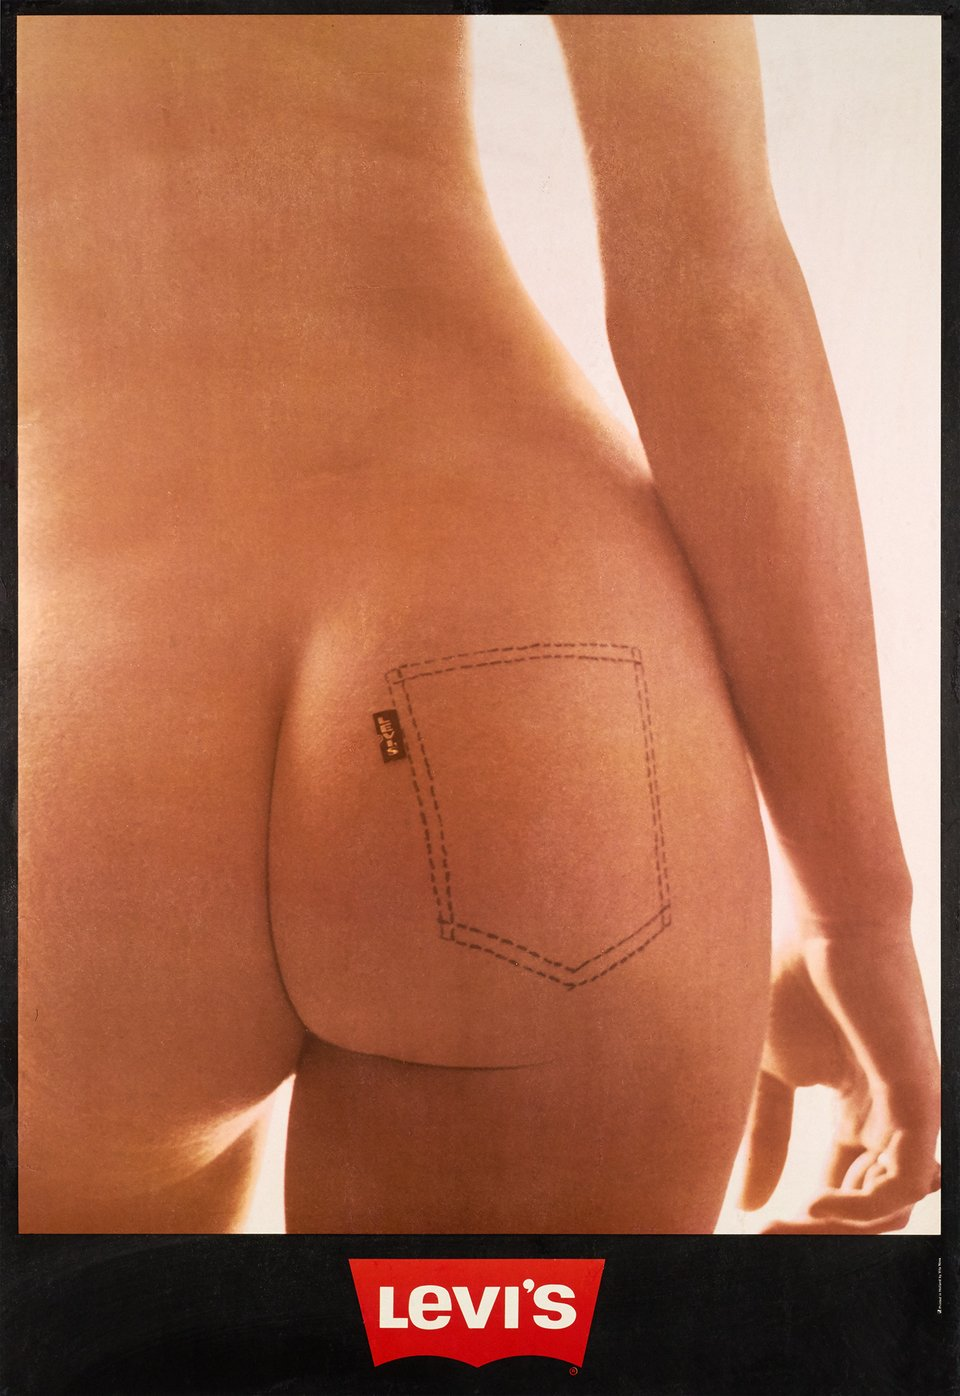 Levi's – Vintage poster – ANONYME – 1971